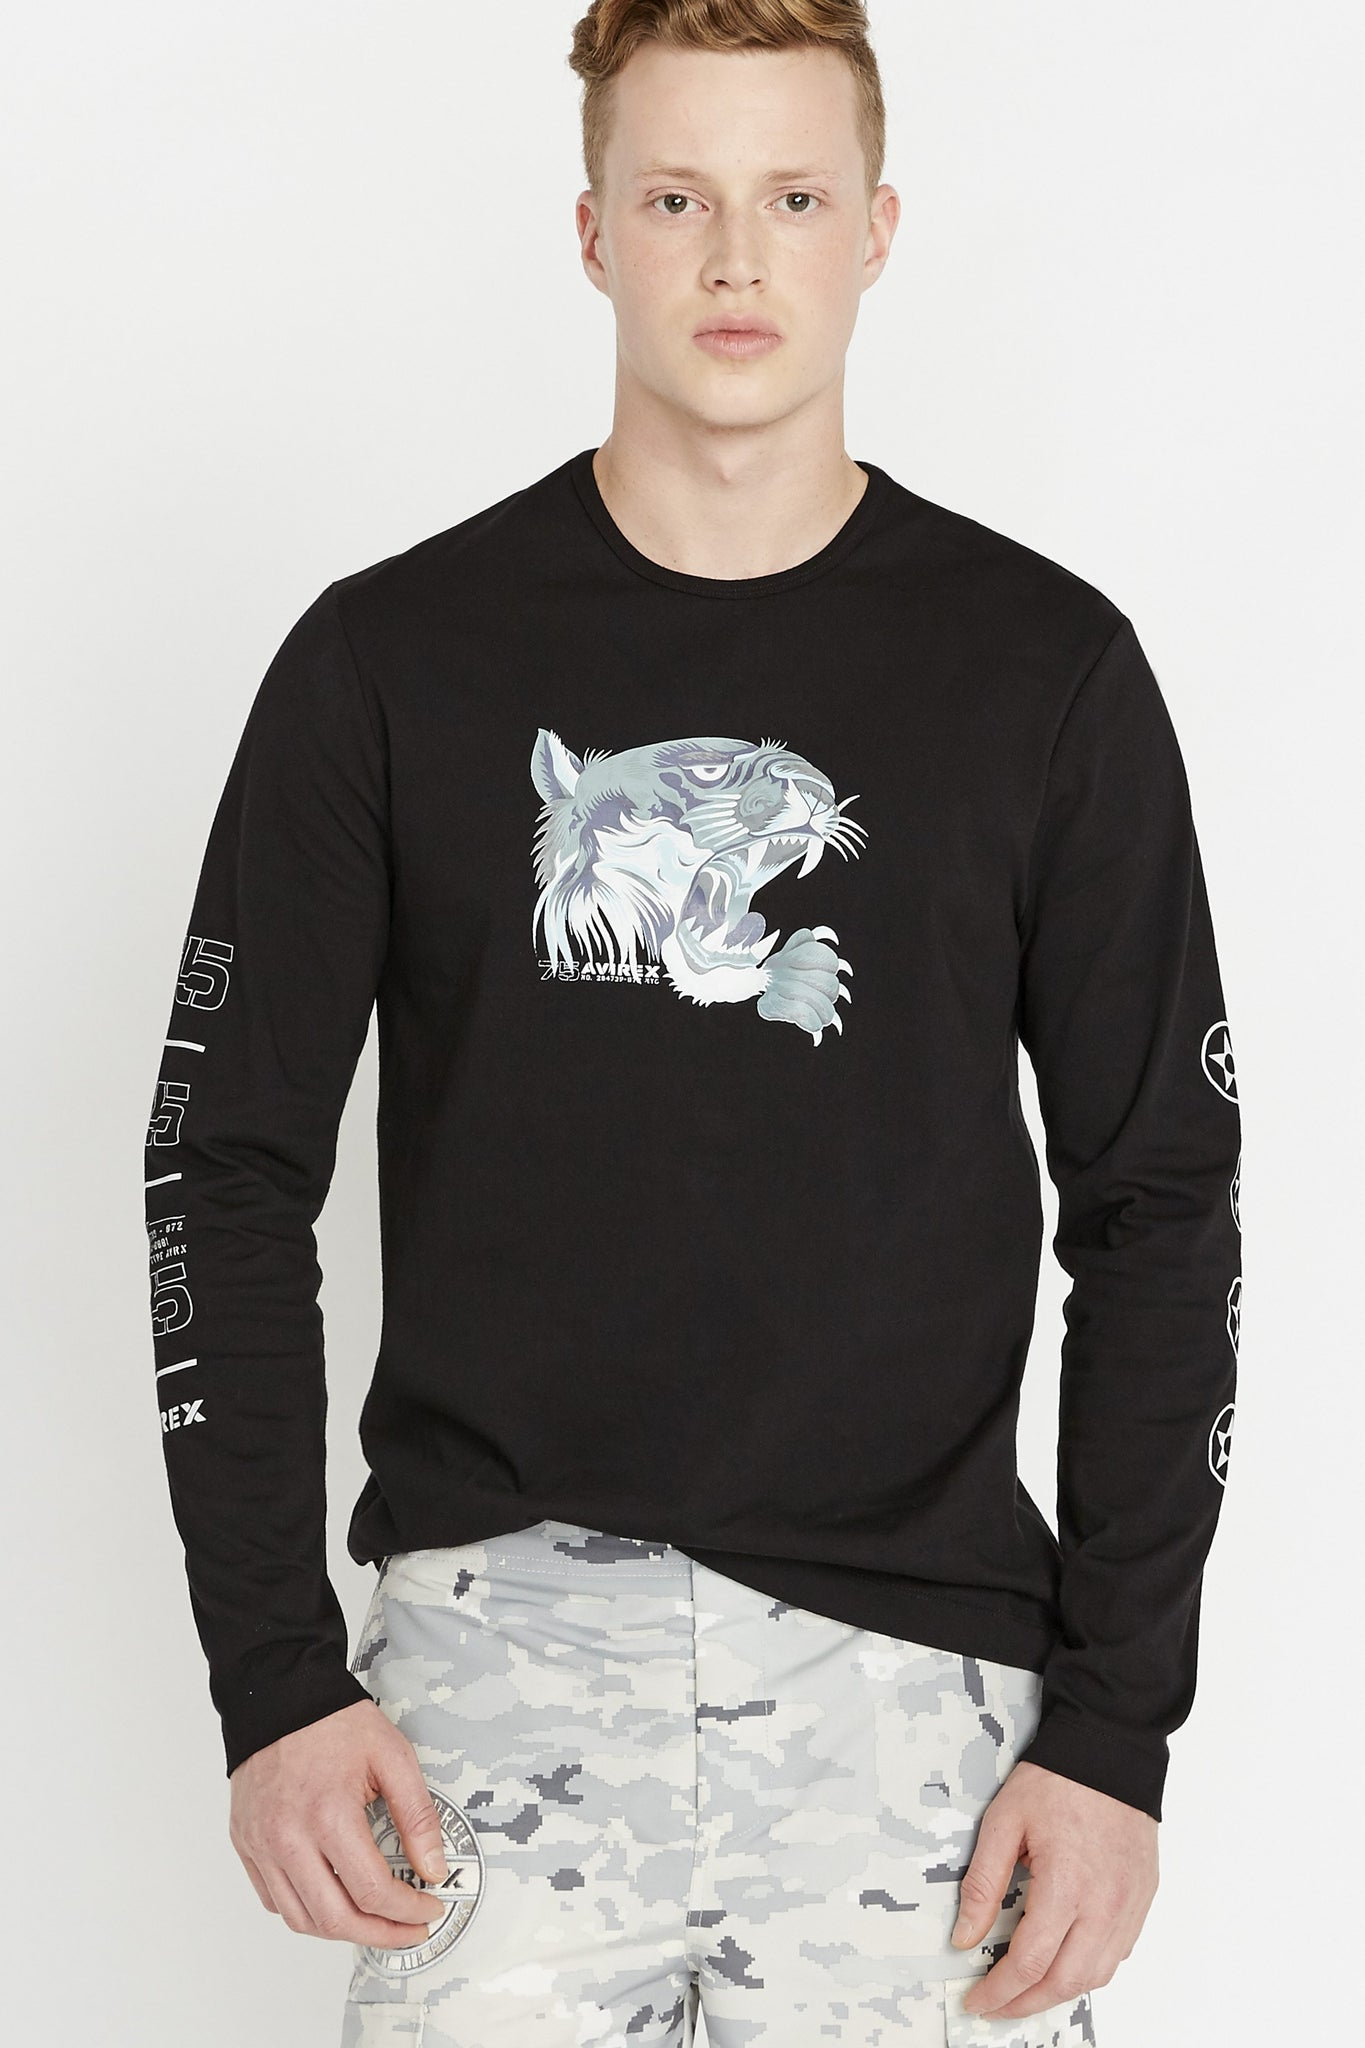 Men wearing a black long sleeve crew neck T-shirt with light grey tiger print on chest and label print on both sleeves